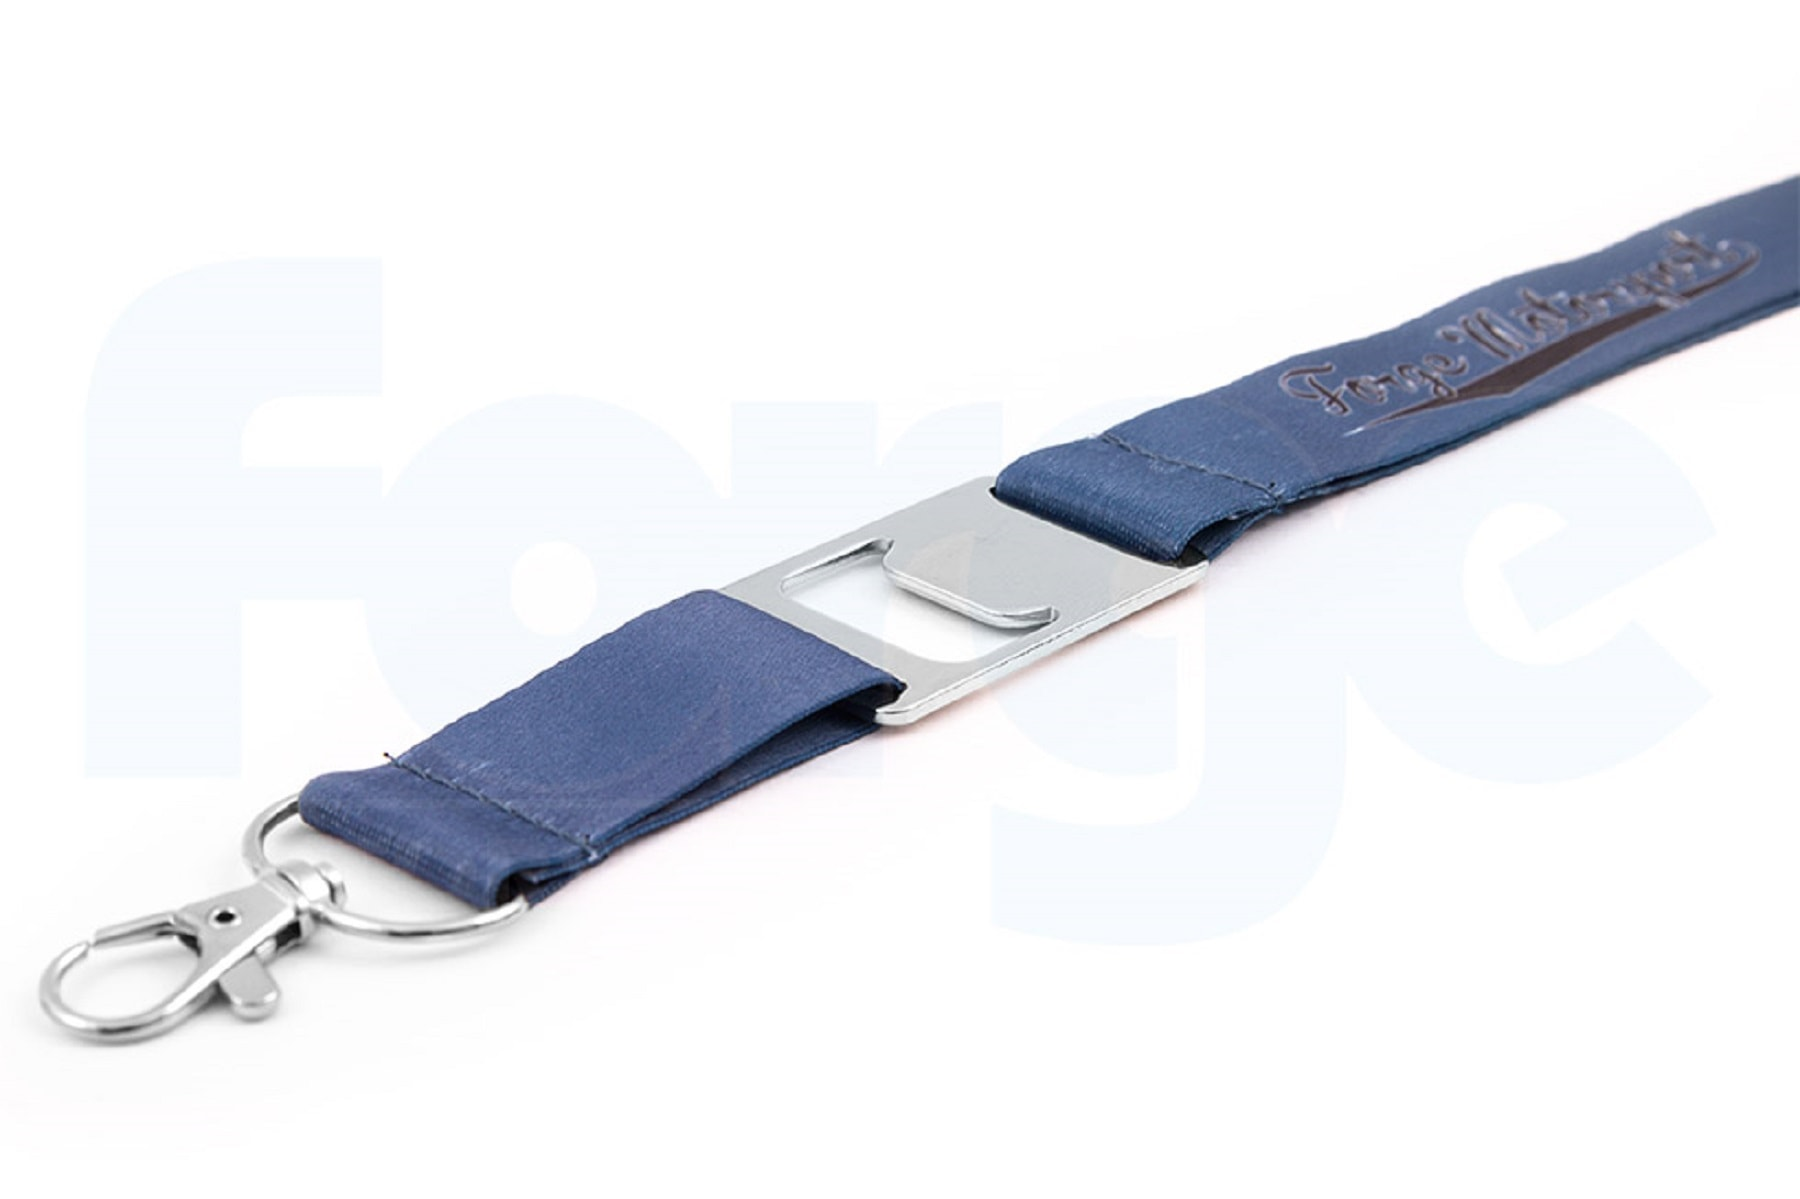 Forge Motorsport Lanyard For Owners Fans Ideal for Keys Shows Track Passes Events Photo Shoots.1